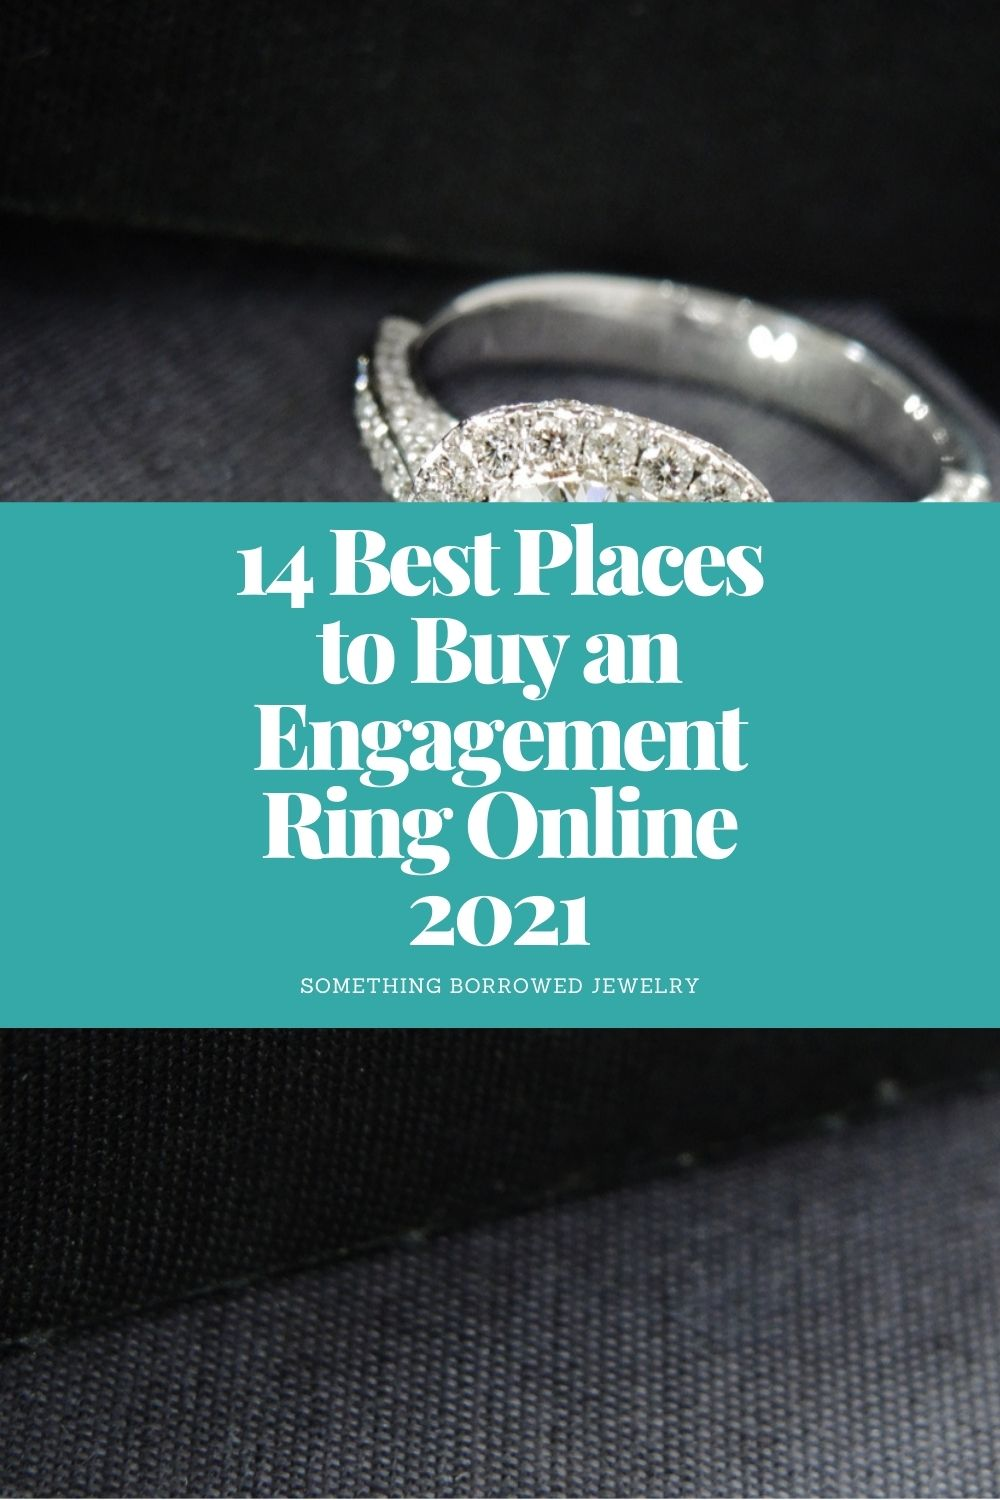 14 Best Places to Buy an Engagement Ring Online 2021 pin 2